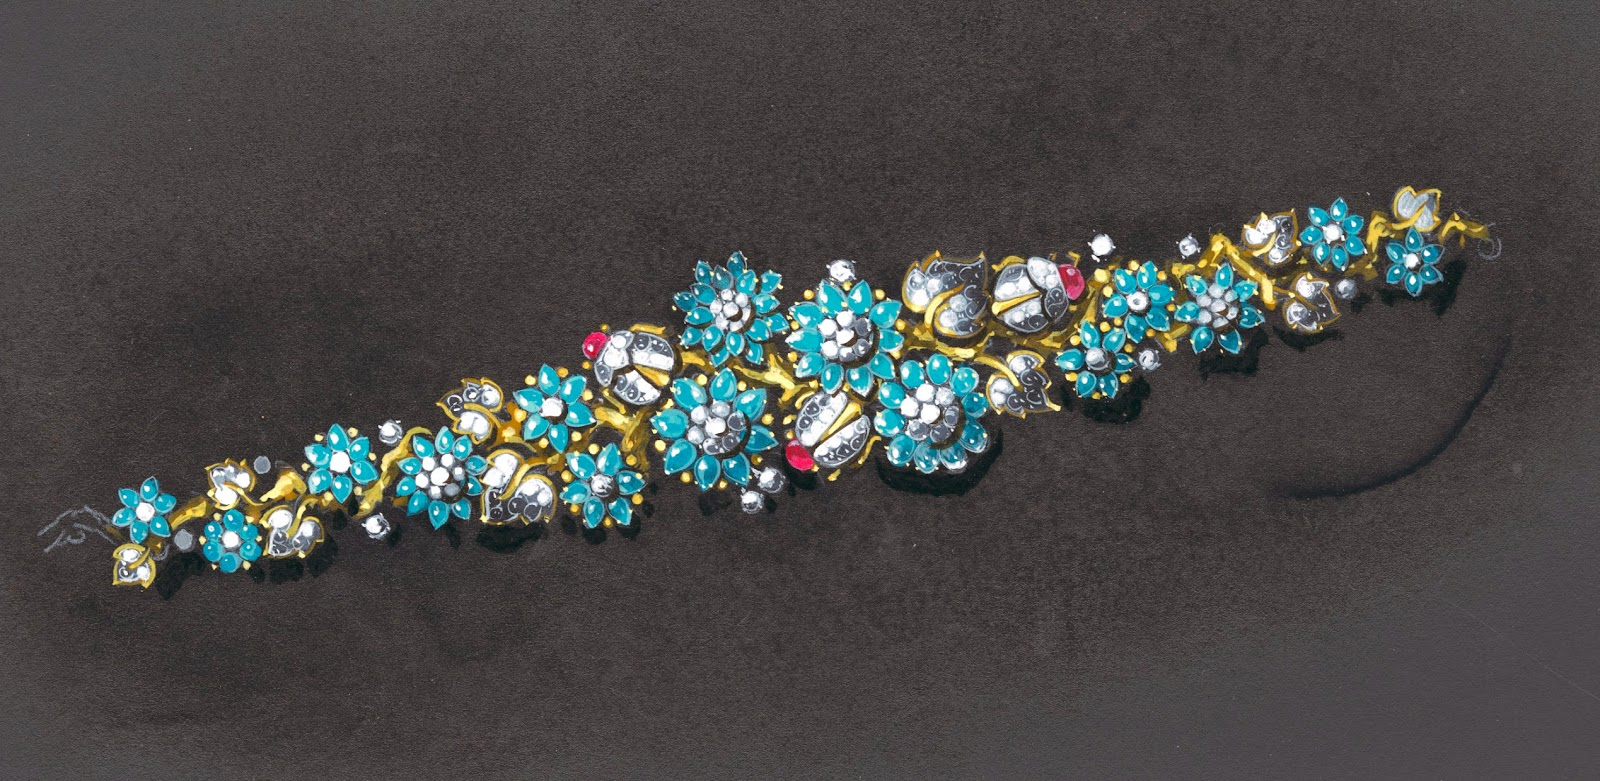 A color drawing of a jewelry piece featuring a cluster of jeweled flowers, leaves, and ladybugs.